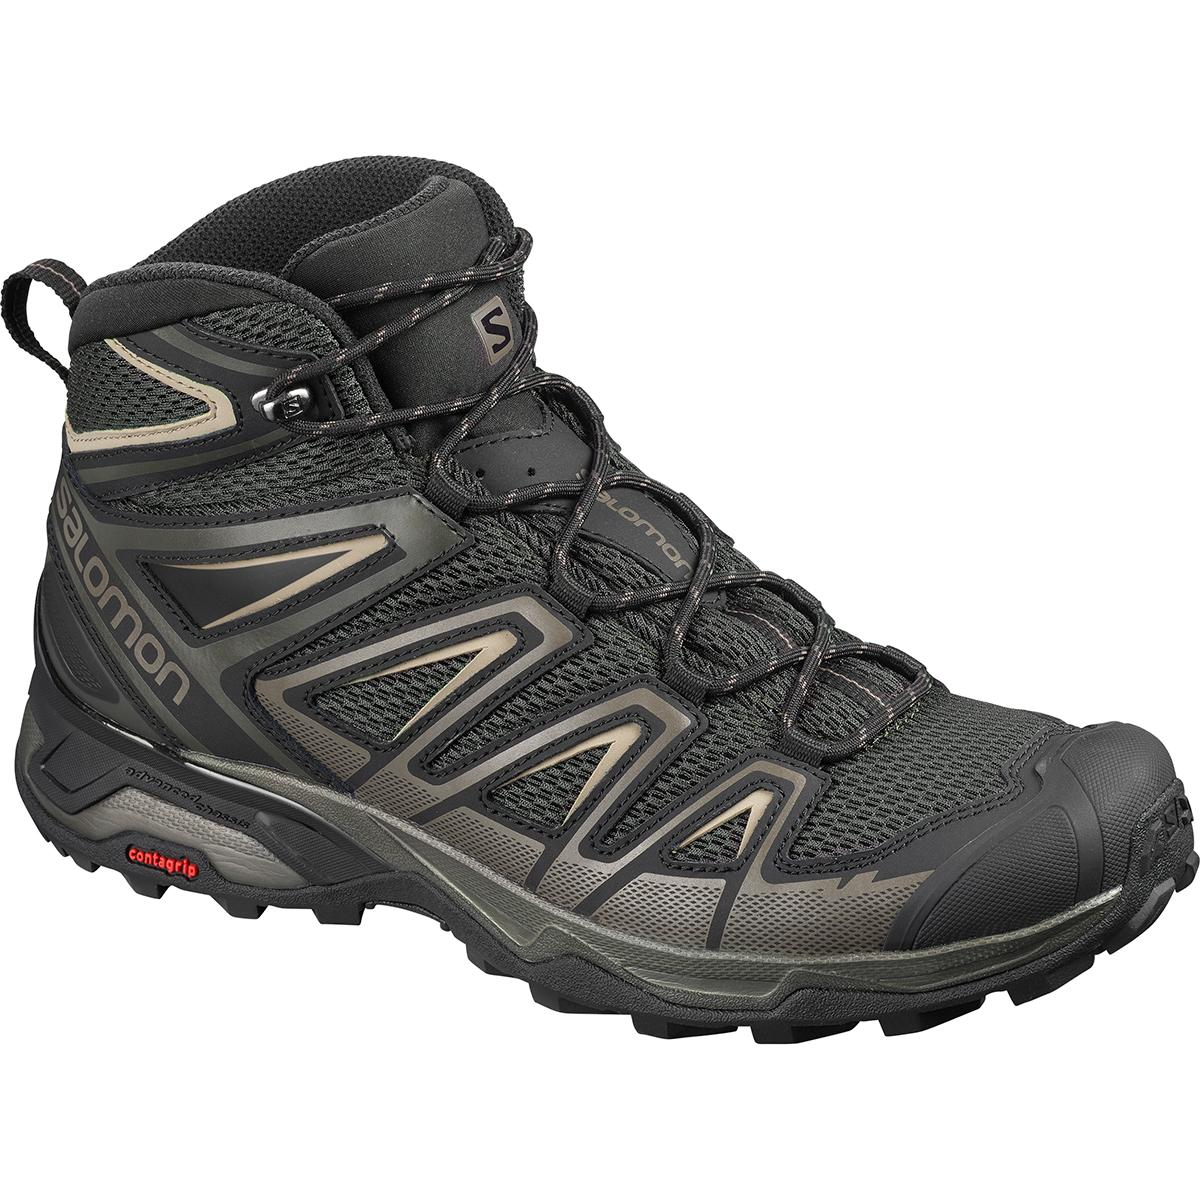 Salomon men's X Ultra Mid 3 Aero Hiking Shoe in Peat and Bungee Cord main view